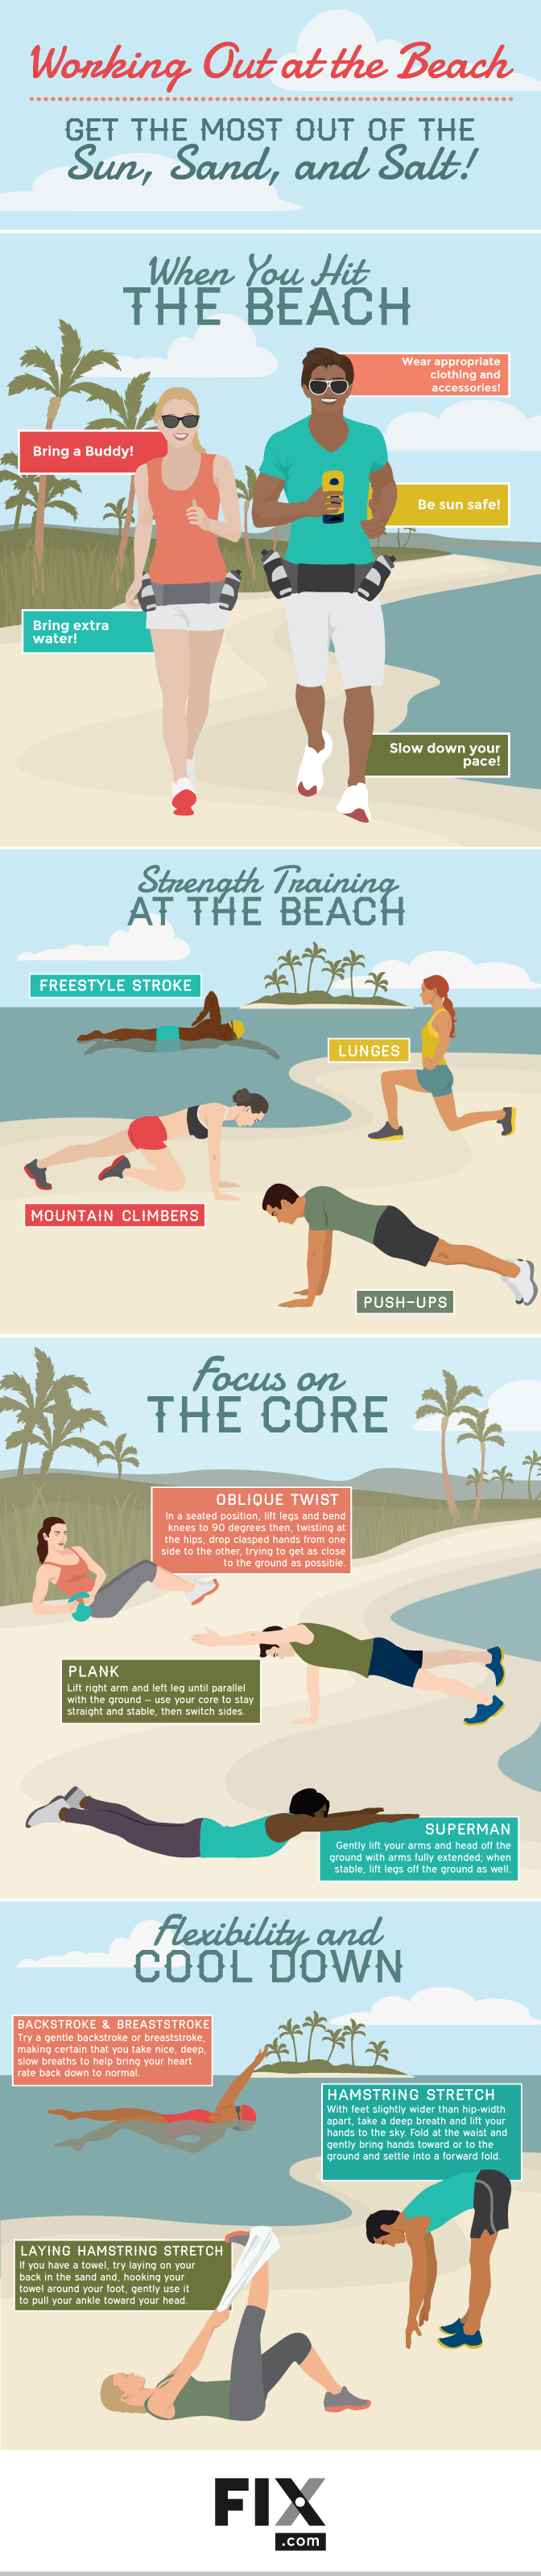 Working Out at the Beach Get the Most Out of the Sun, Sand, and Salt! #infographic